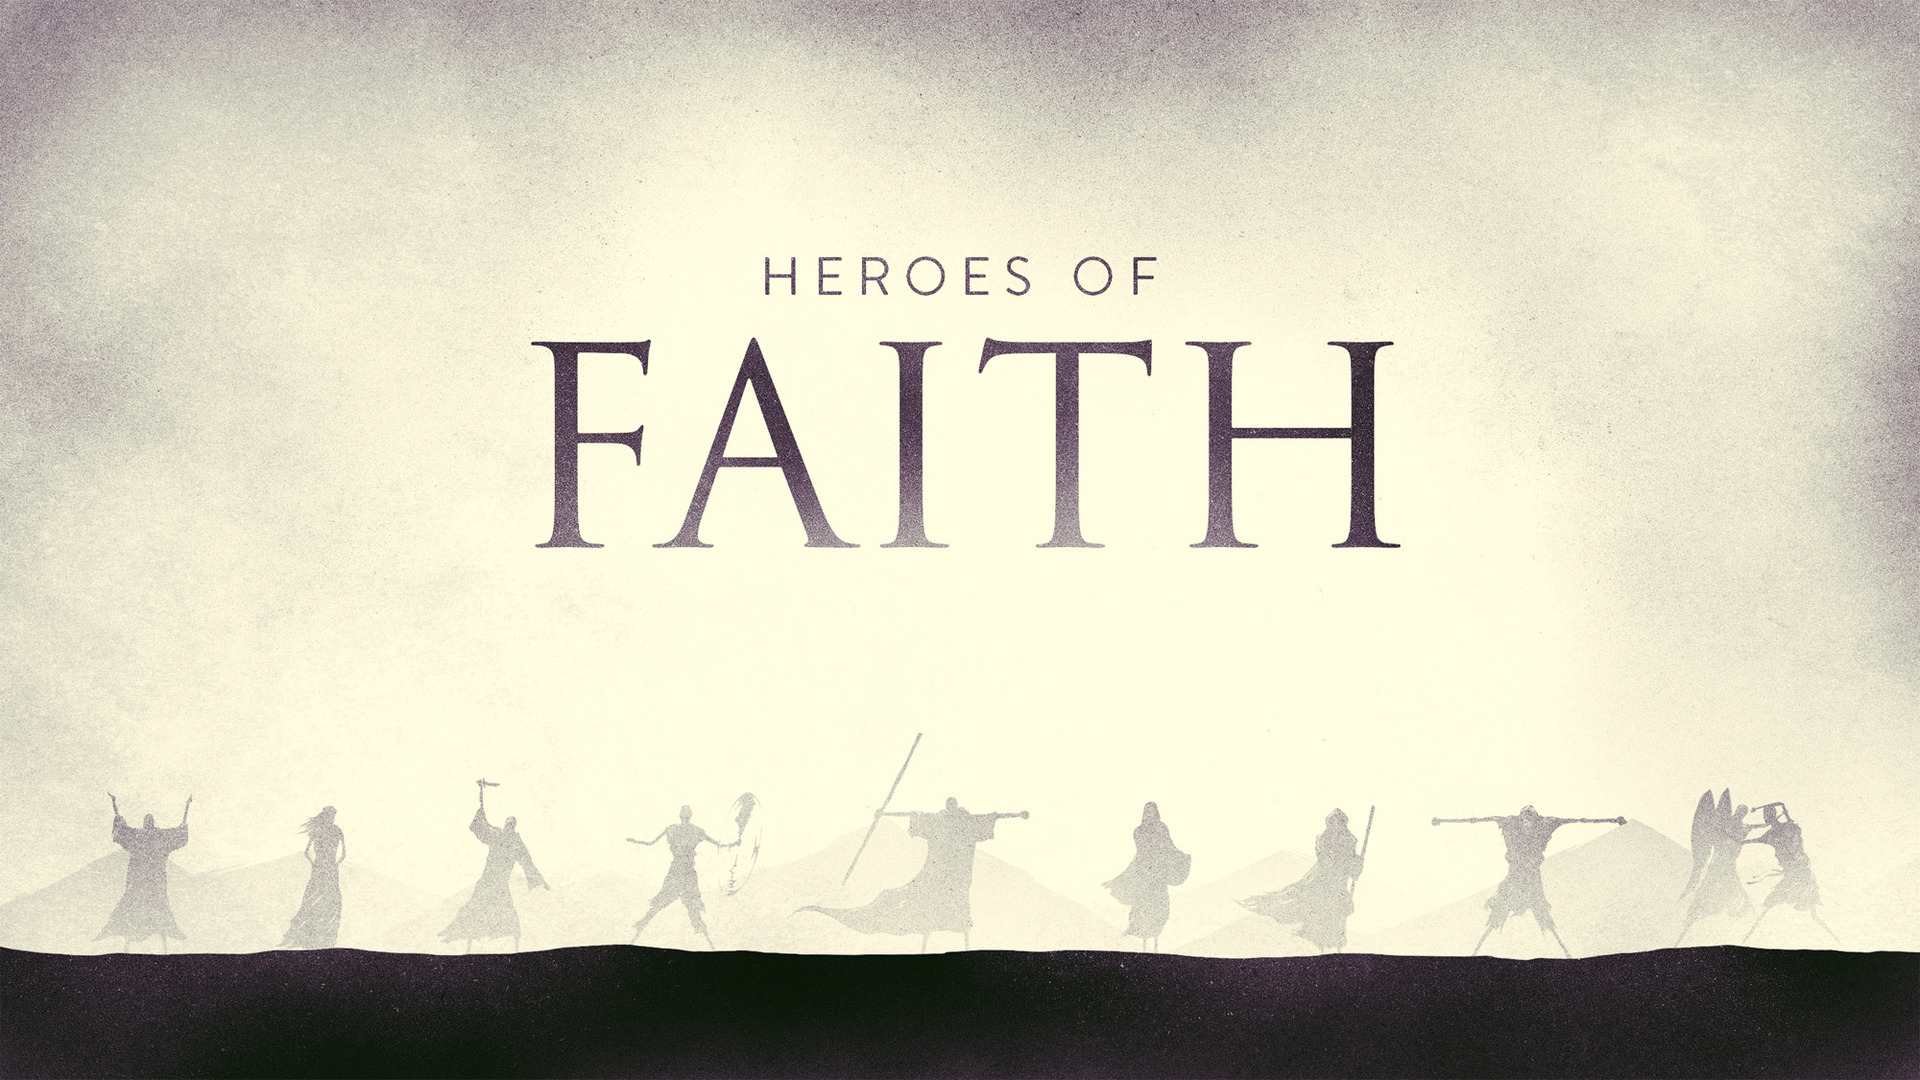 HEROES OF FAITH | SERIES - SAMUEL [CHARLES TAYLOR} | 05.26.2019 | WATCH | LISTENSARAH [PHIL CHORLIAN] | 06.02.2019 | WATCH | LISTENRAHAB [PHIL CHORLIAN] | 06.09.2019 | WATCH | LISTENSAMSON [PHIL CHORLIAN] | 06.16.2019 | WATCH | LISTENISAIAH [PHIL CHORLIAN] | 06.23.2019 | WATCH | LISTEN